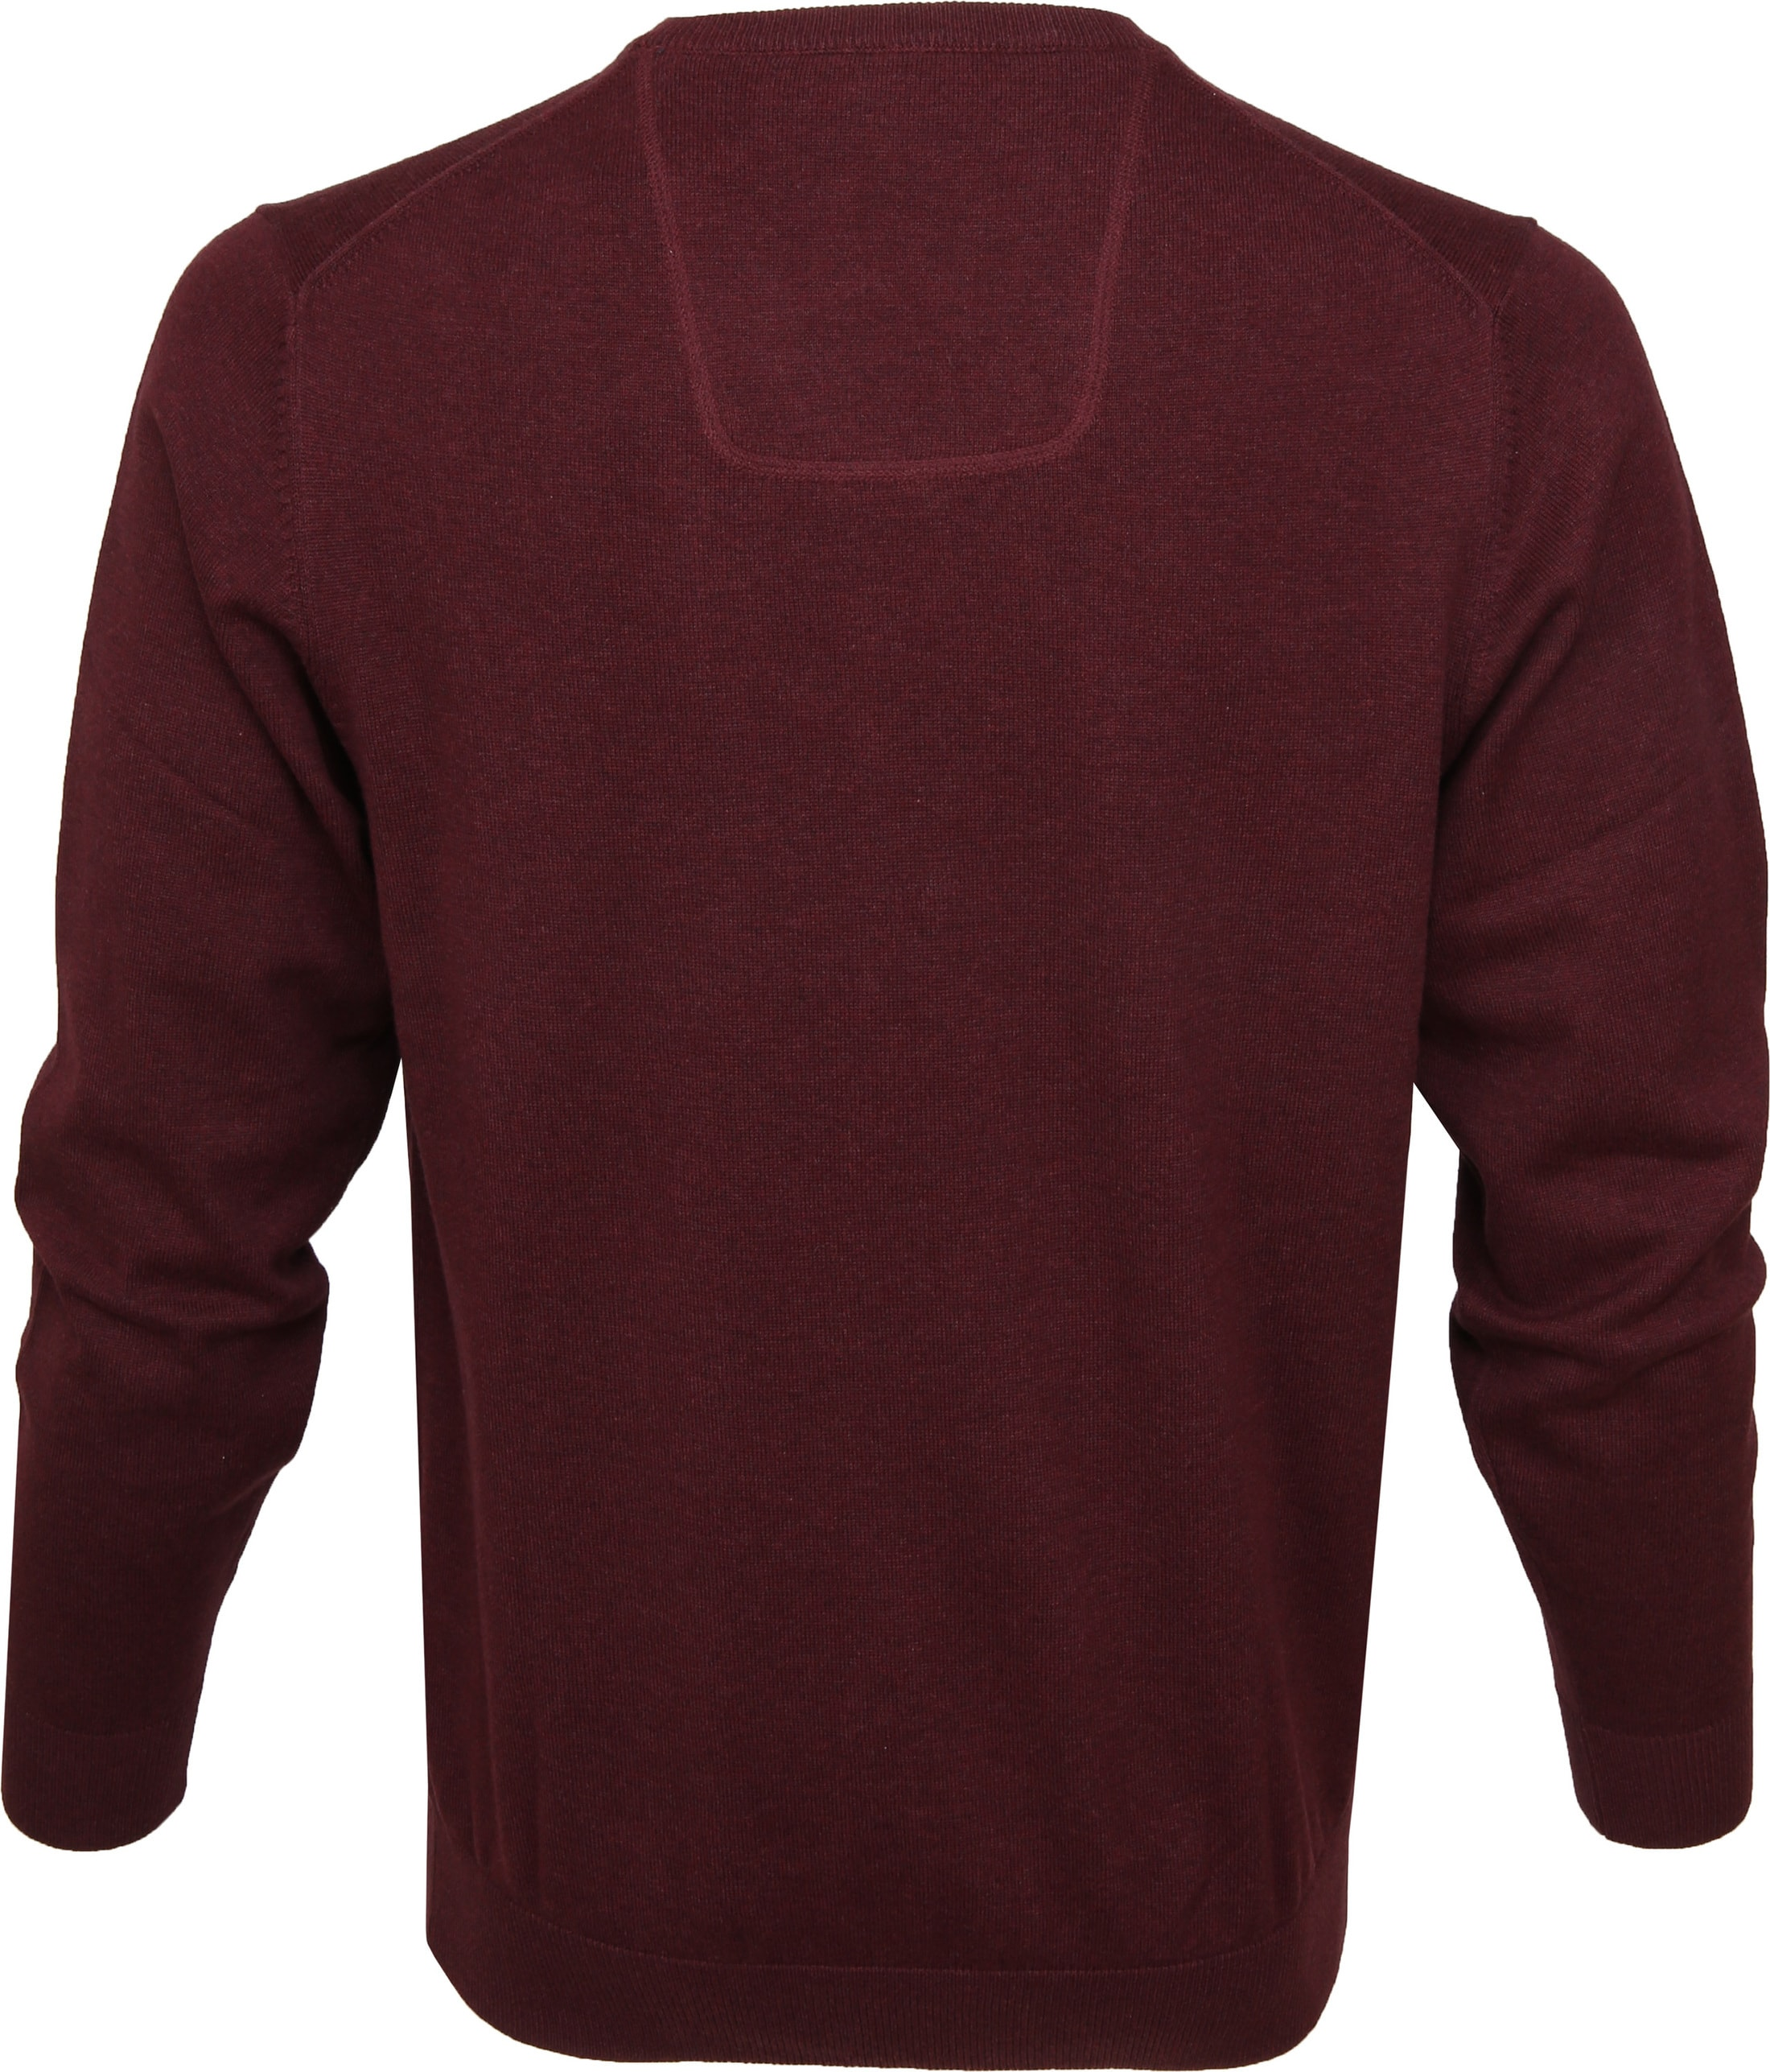 Casa Moda Pullover Bordeaux photo 3